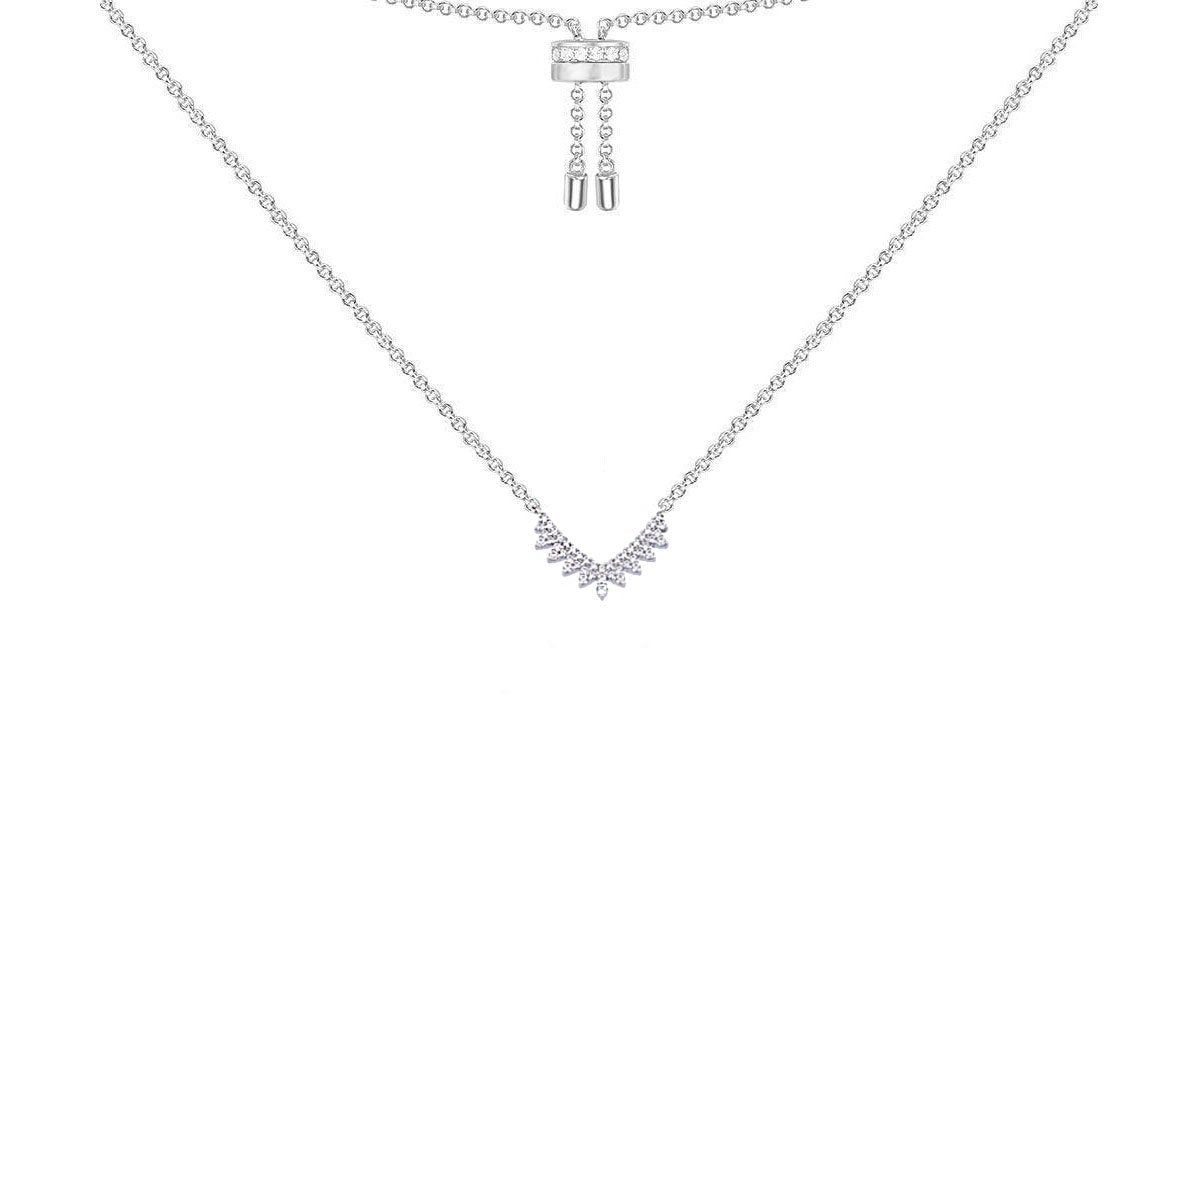 Necklace N1279 - 925 Sterling Silver